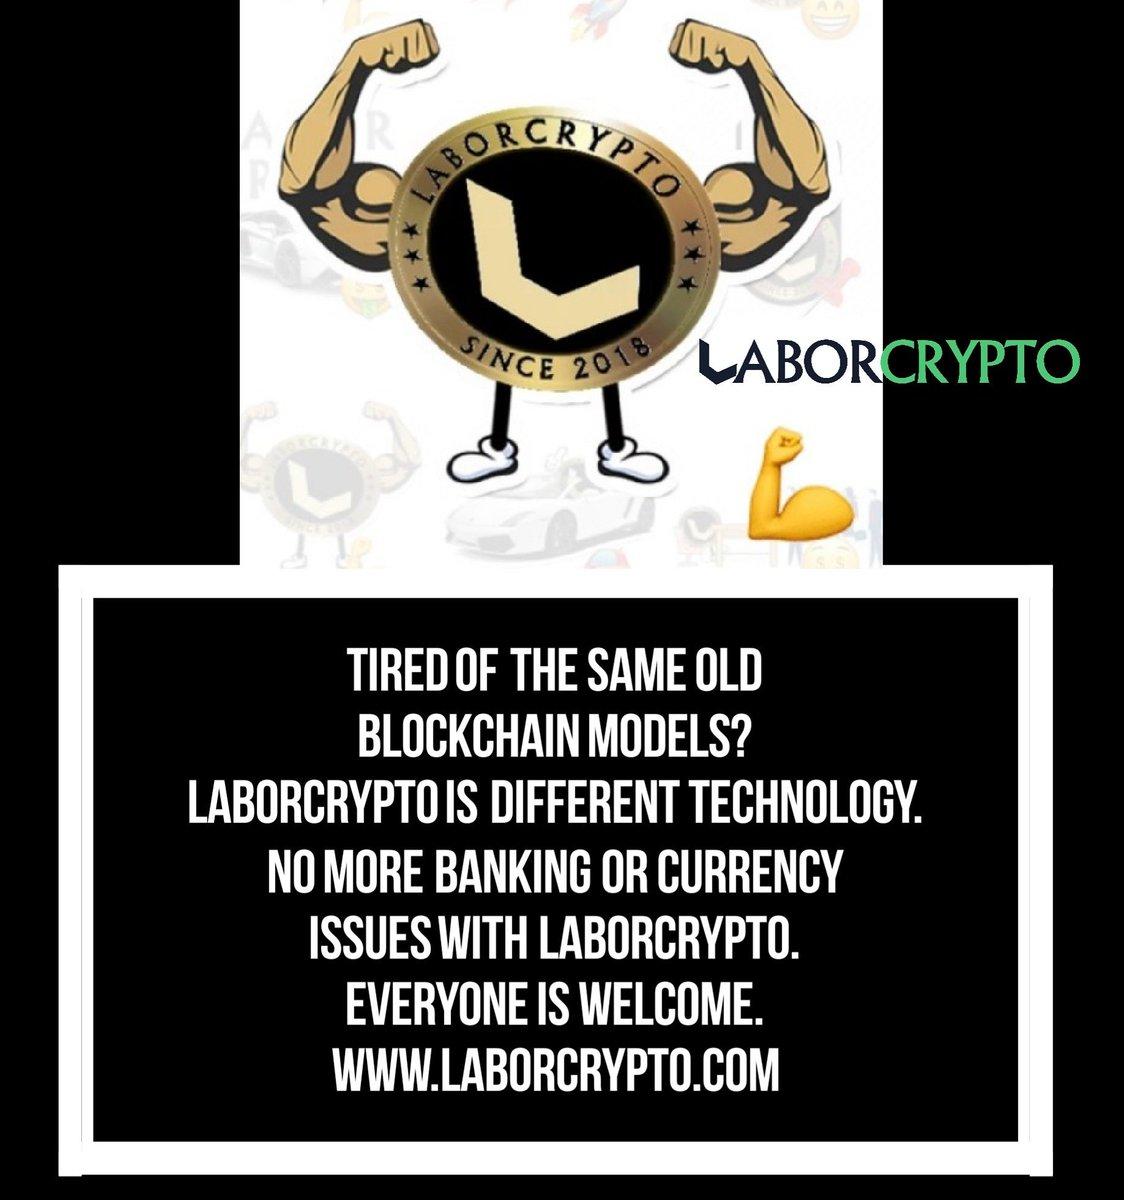 Don&#39;t be left out Join Our Telegram Group Today Link in bio #investinyourfuture  #doitnow  #realmoney   #buy  #coinbase  #investments  #tradebitcoin  #bcc  #bitcoinwallet  #bitcointrading  http://www. laborcrypto.com  &nbsp;  <br>http://pic.twitter.com/5DRNocfRaG